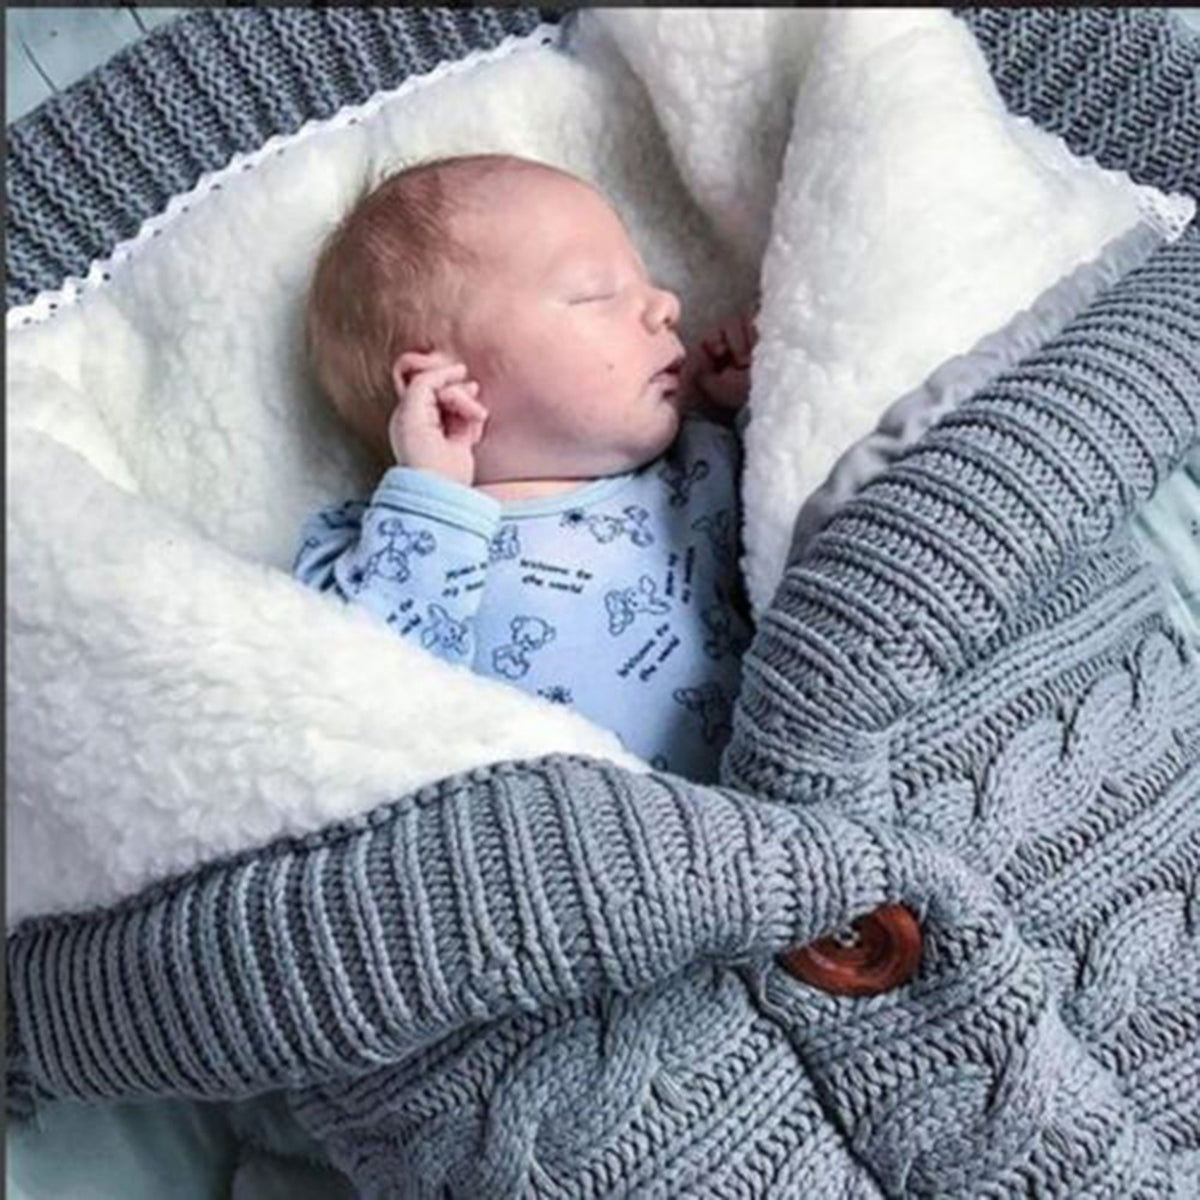 Knitted Baby Sleep Sack for Winter